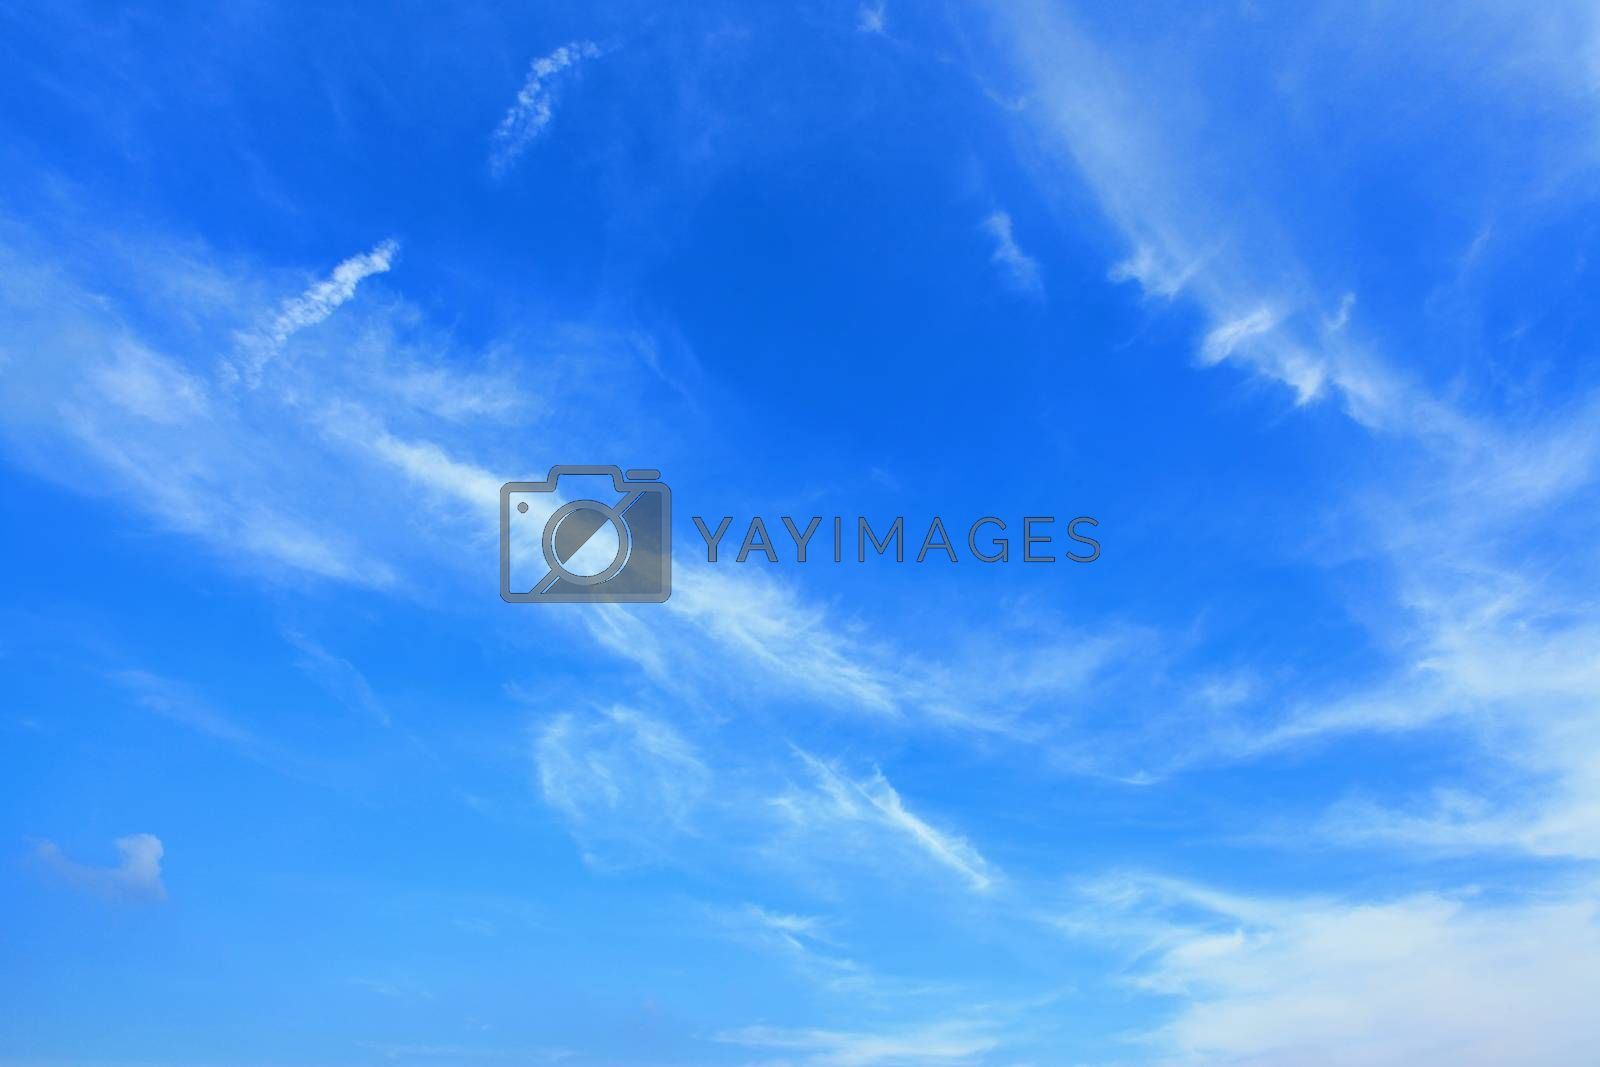 Royalty free image of Clouds and sky by antpkr